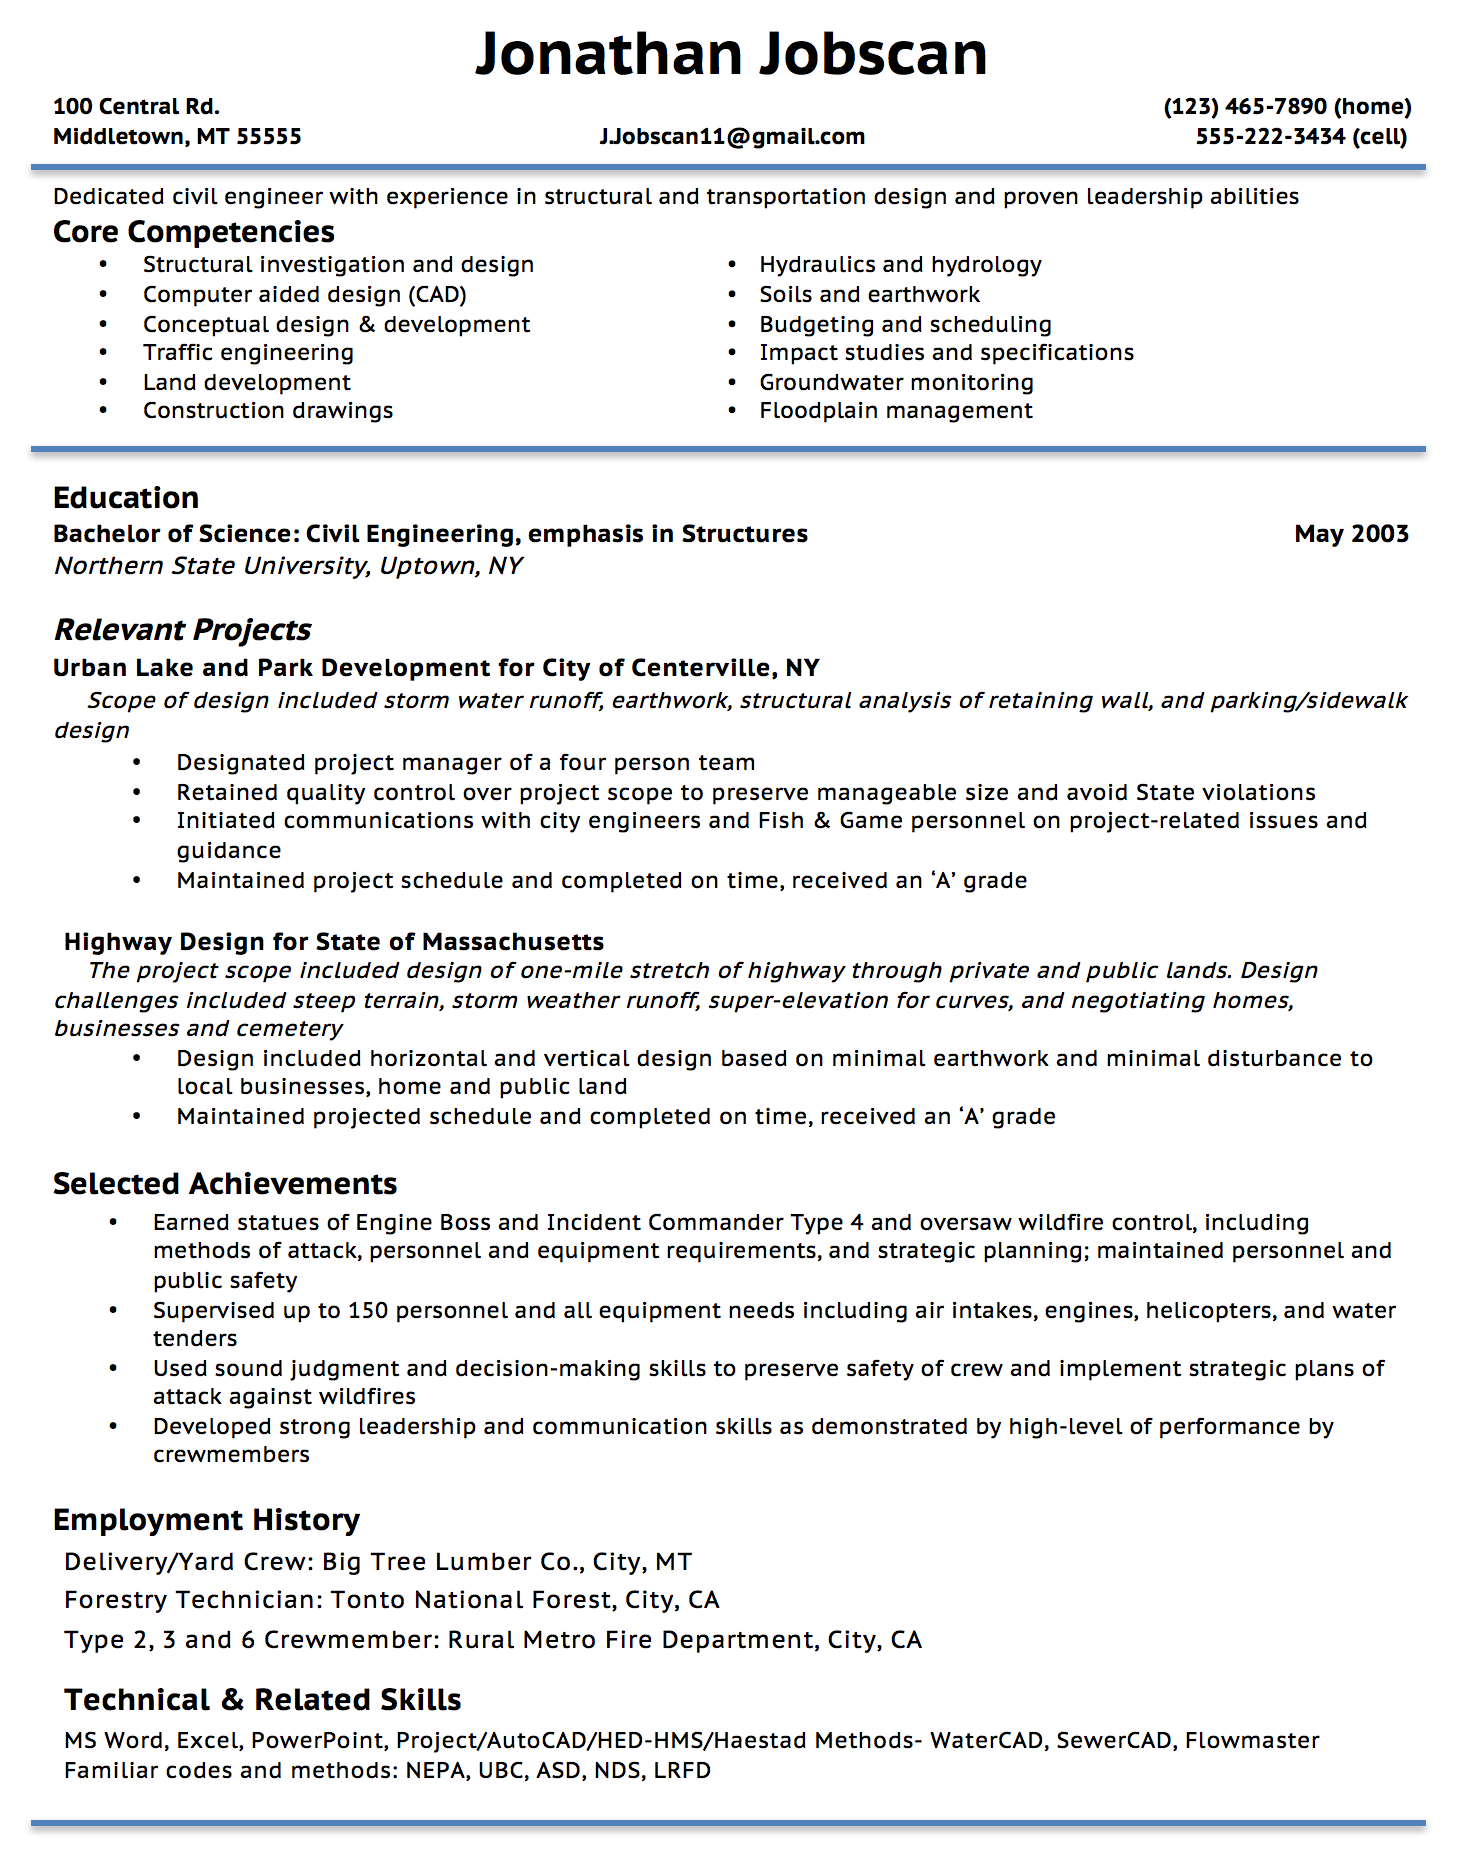 Opposenewapstandardsus  Nice Resume Writing Guide  Jobscan With Inspiring Example Of A Functional Resume Format With Astounding Skills To Put In Resume Also Word Resume Templates Free In Addition Resume Wizard Word And Resumes Formats As Well As Pta Resume Additionally Customer Service Representative Resume Sample From Jobscanco With Opposenewapstandardsus  Inspiring Resume Writing Guide  Jobscan With Astounding Example Of A Functional Resume Format And Nice Skills To Put In Resume Also Word Resume Templates Free In Addition Resume Wizard Word From Jobscanco